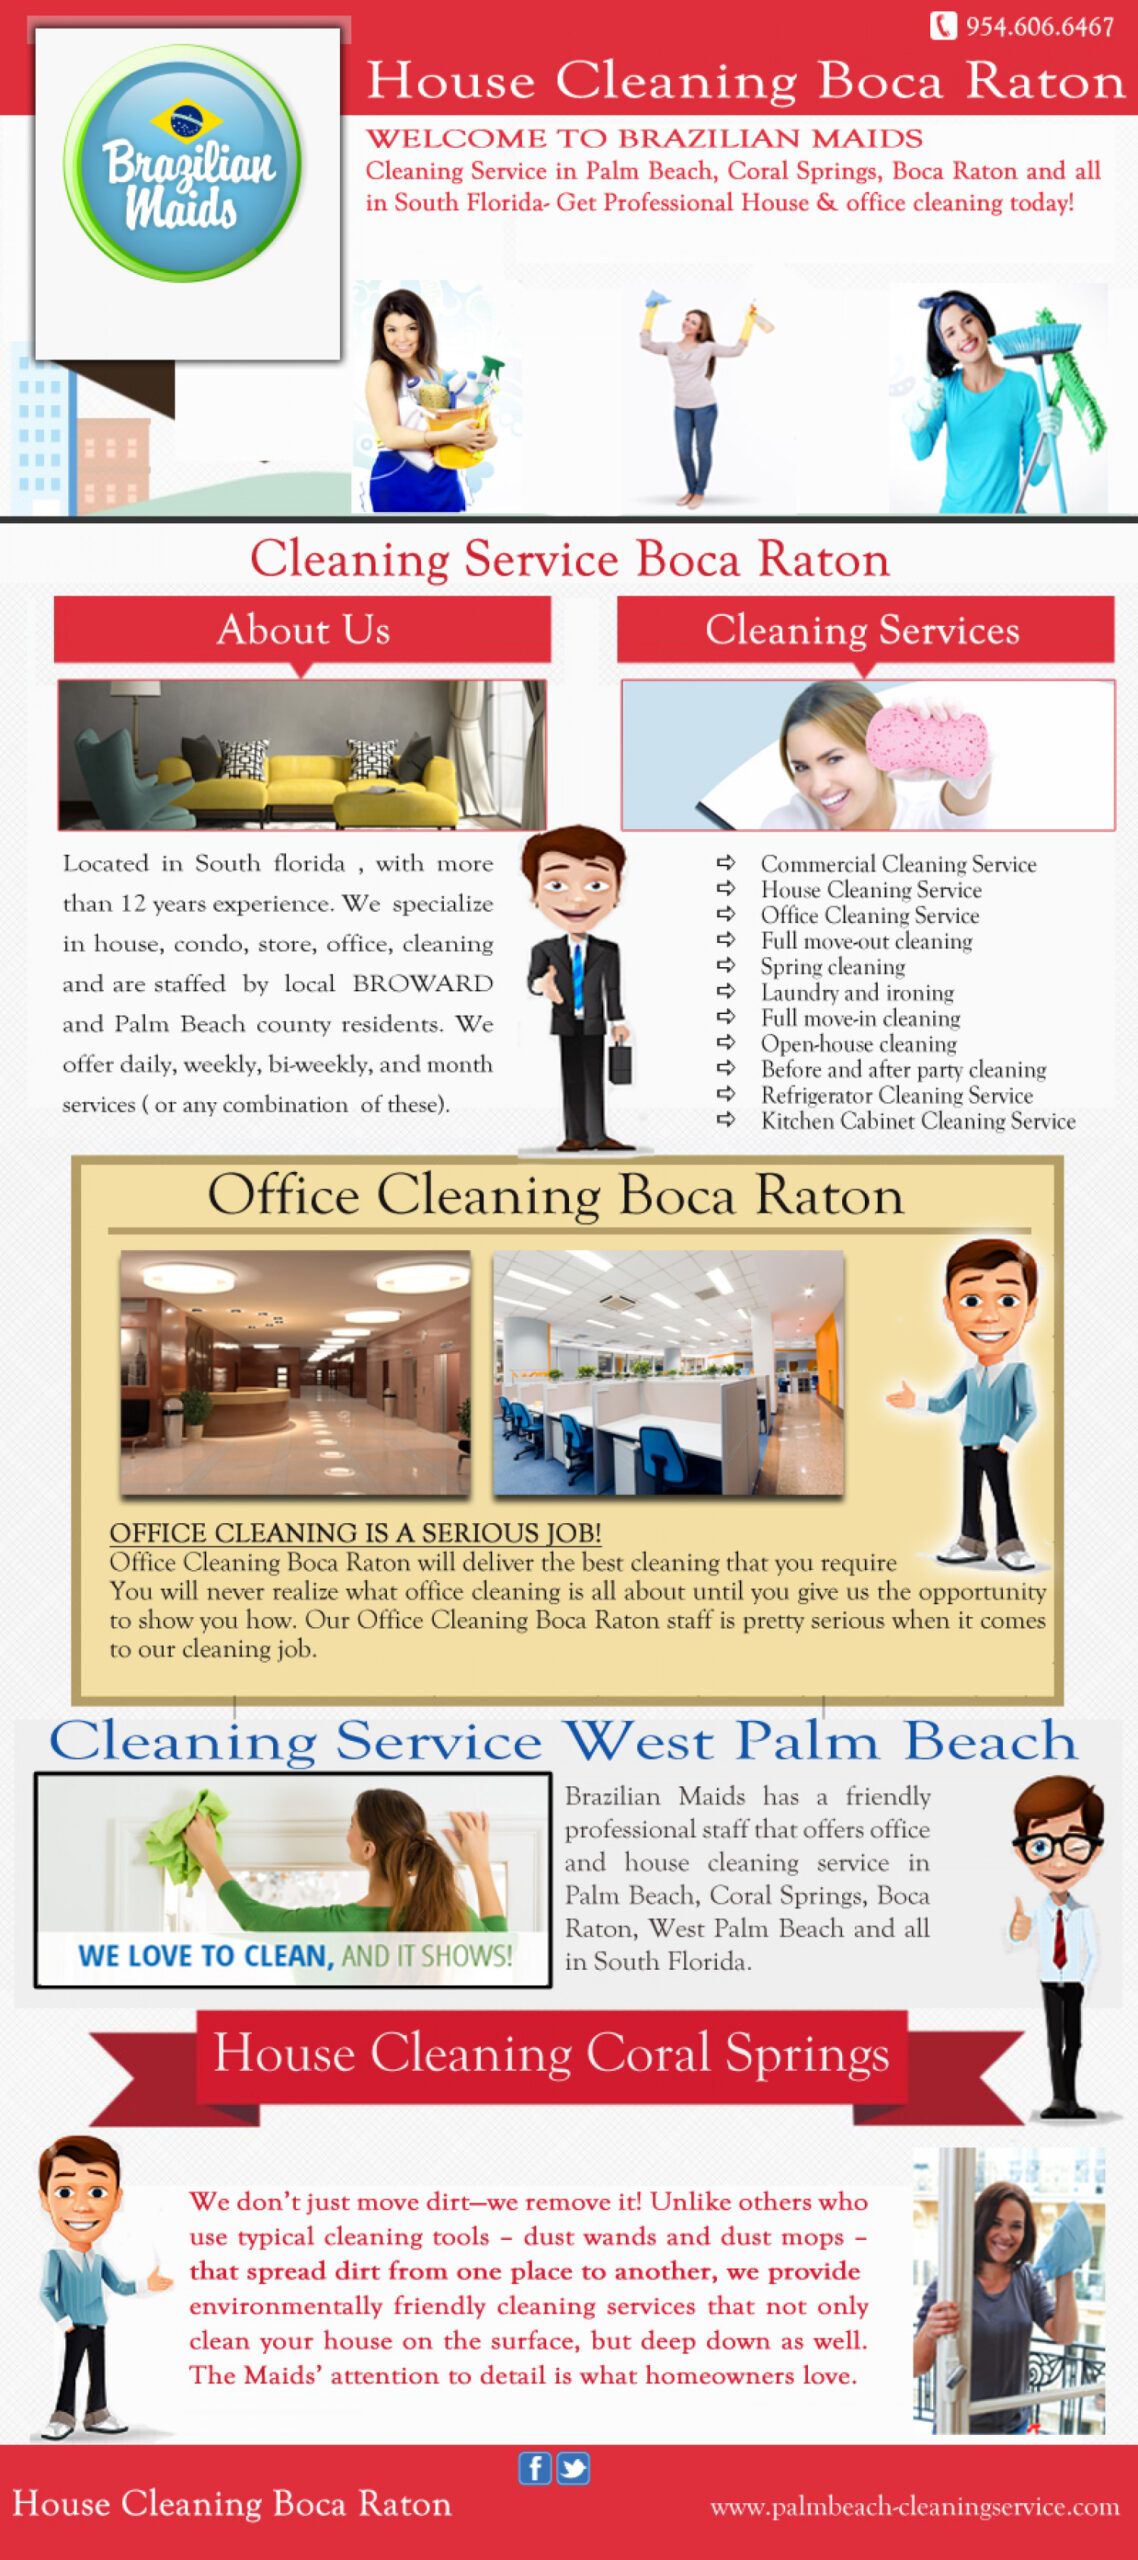 resume writing service boca raton best in fl with reviews services west palm beach house Resume Resume Writing Services West Palm Beach